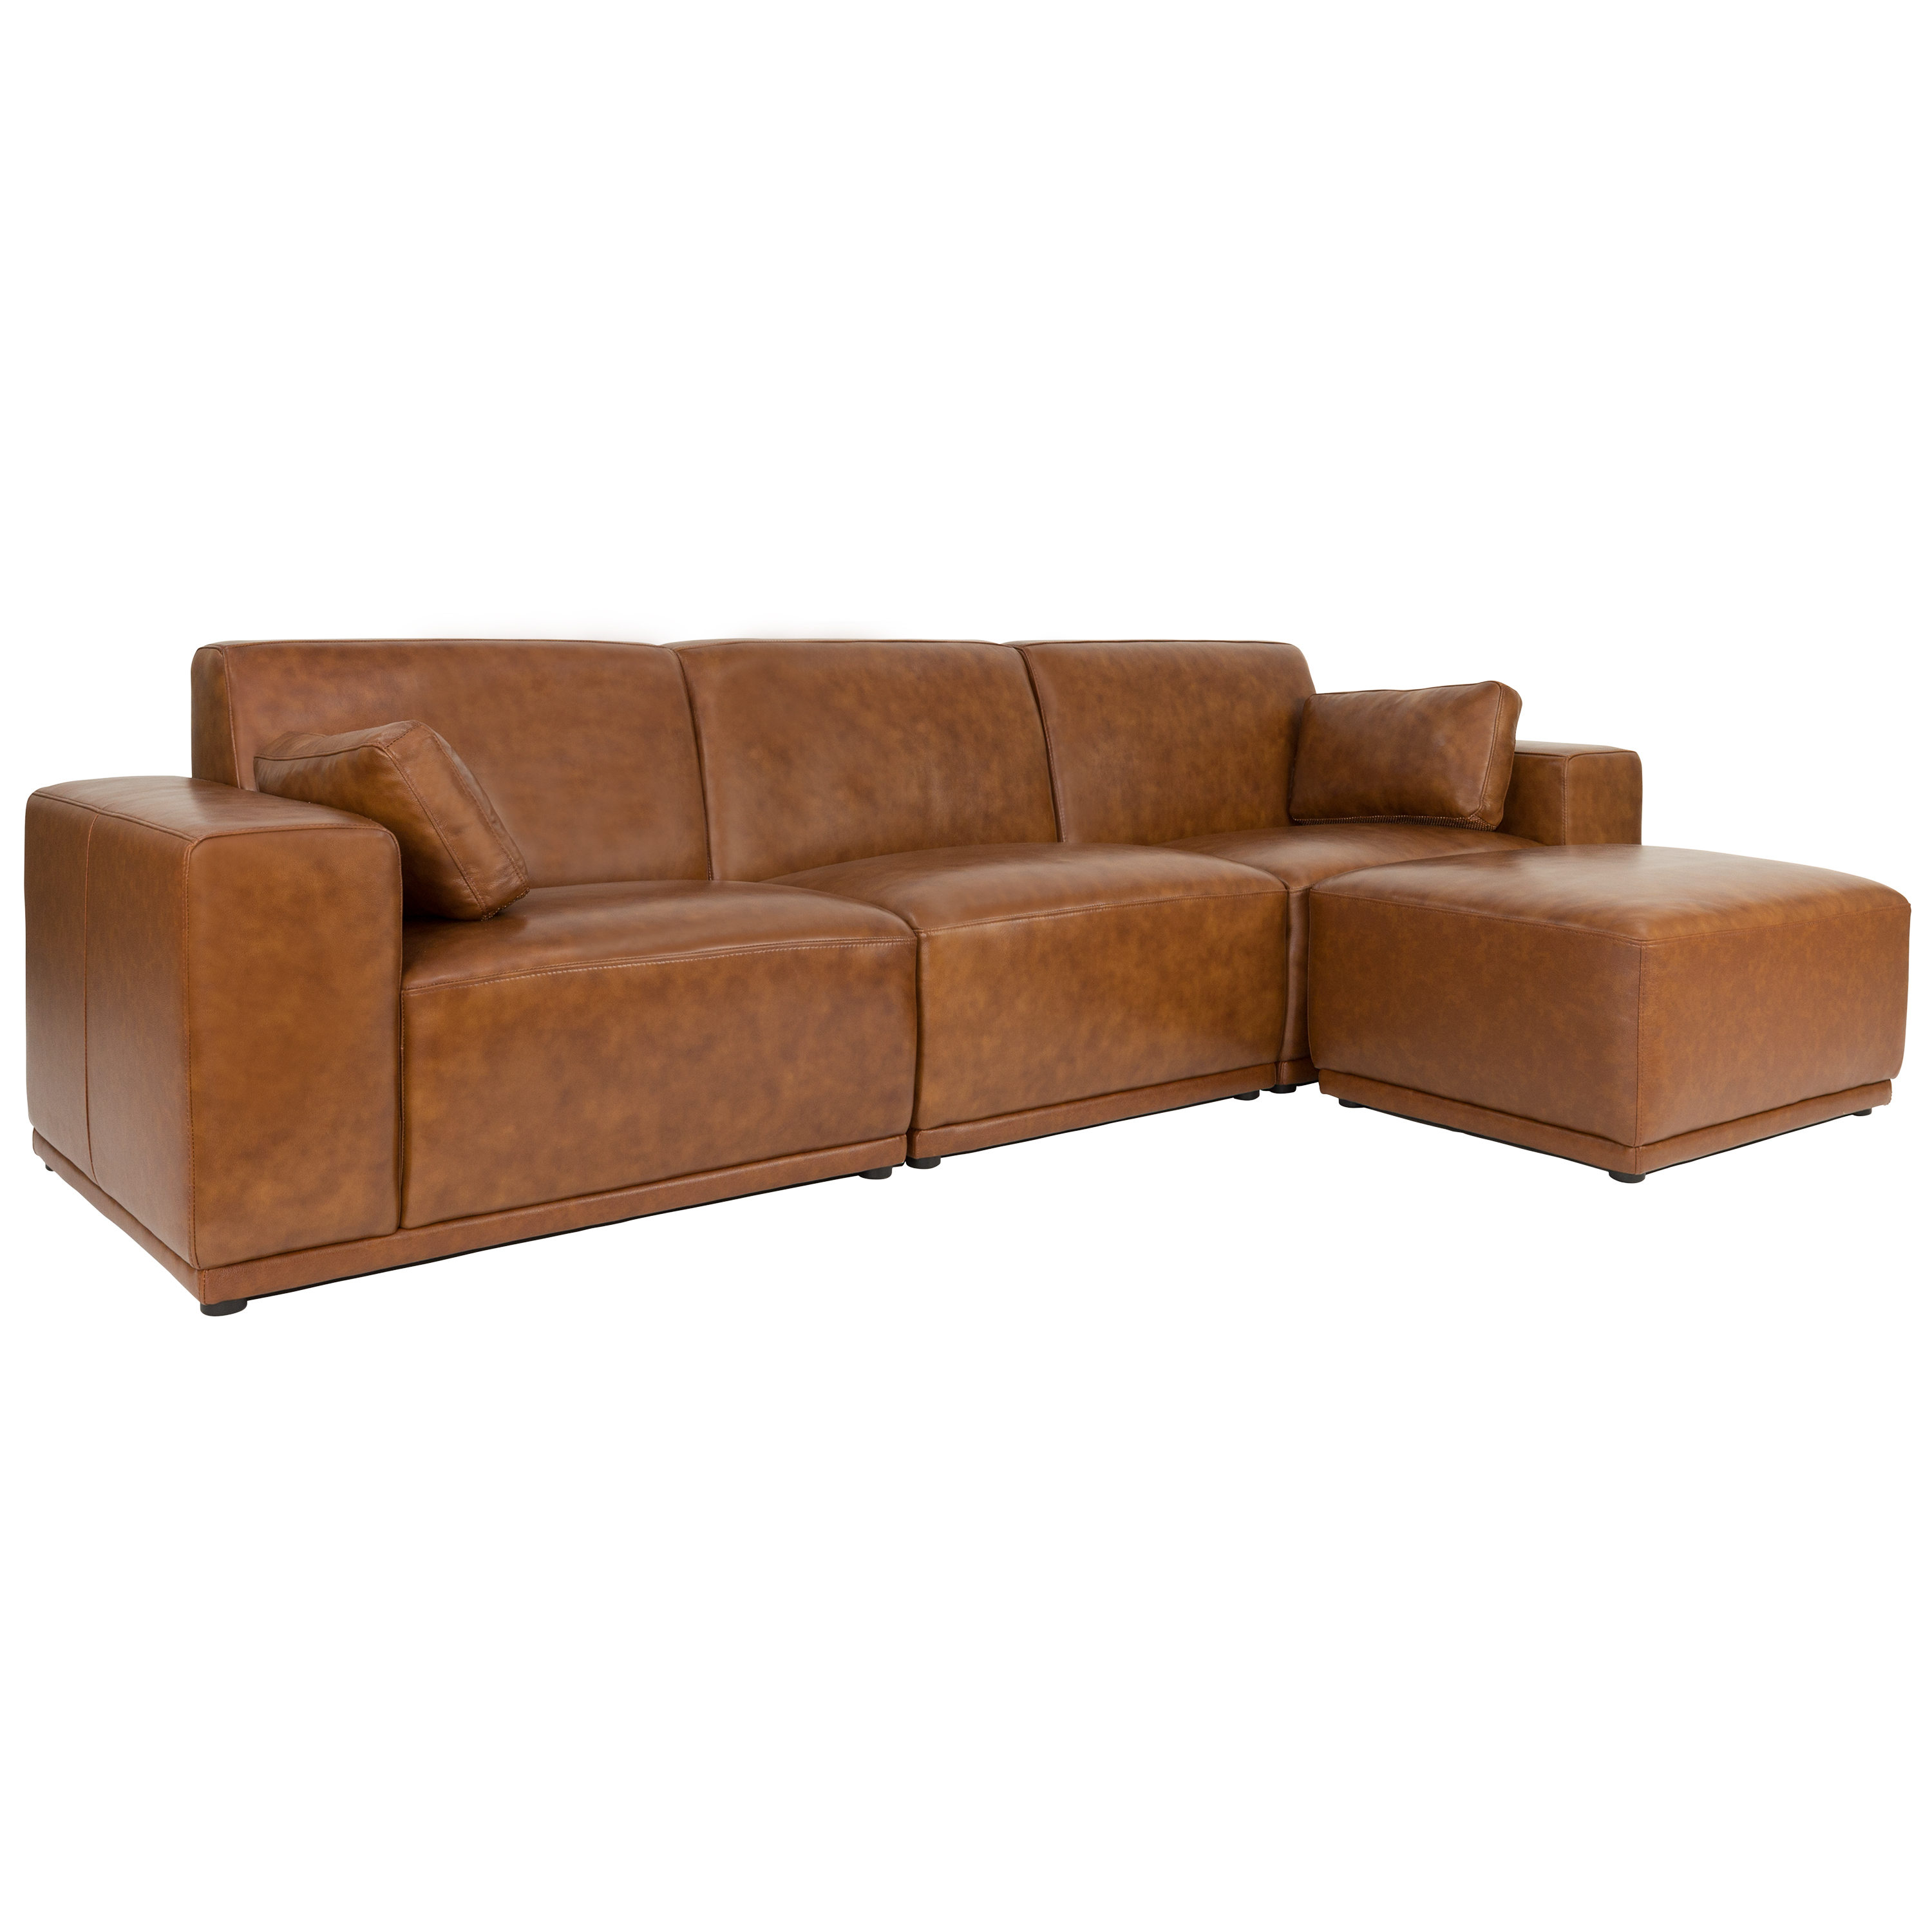 milan 3 seater sofa with ottoman cowhide image 2